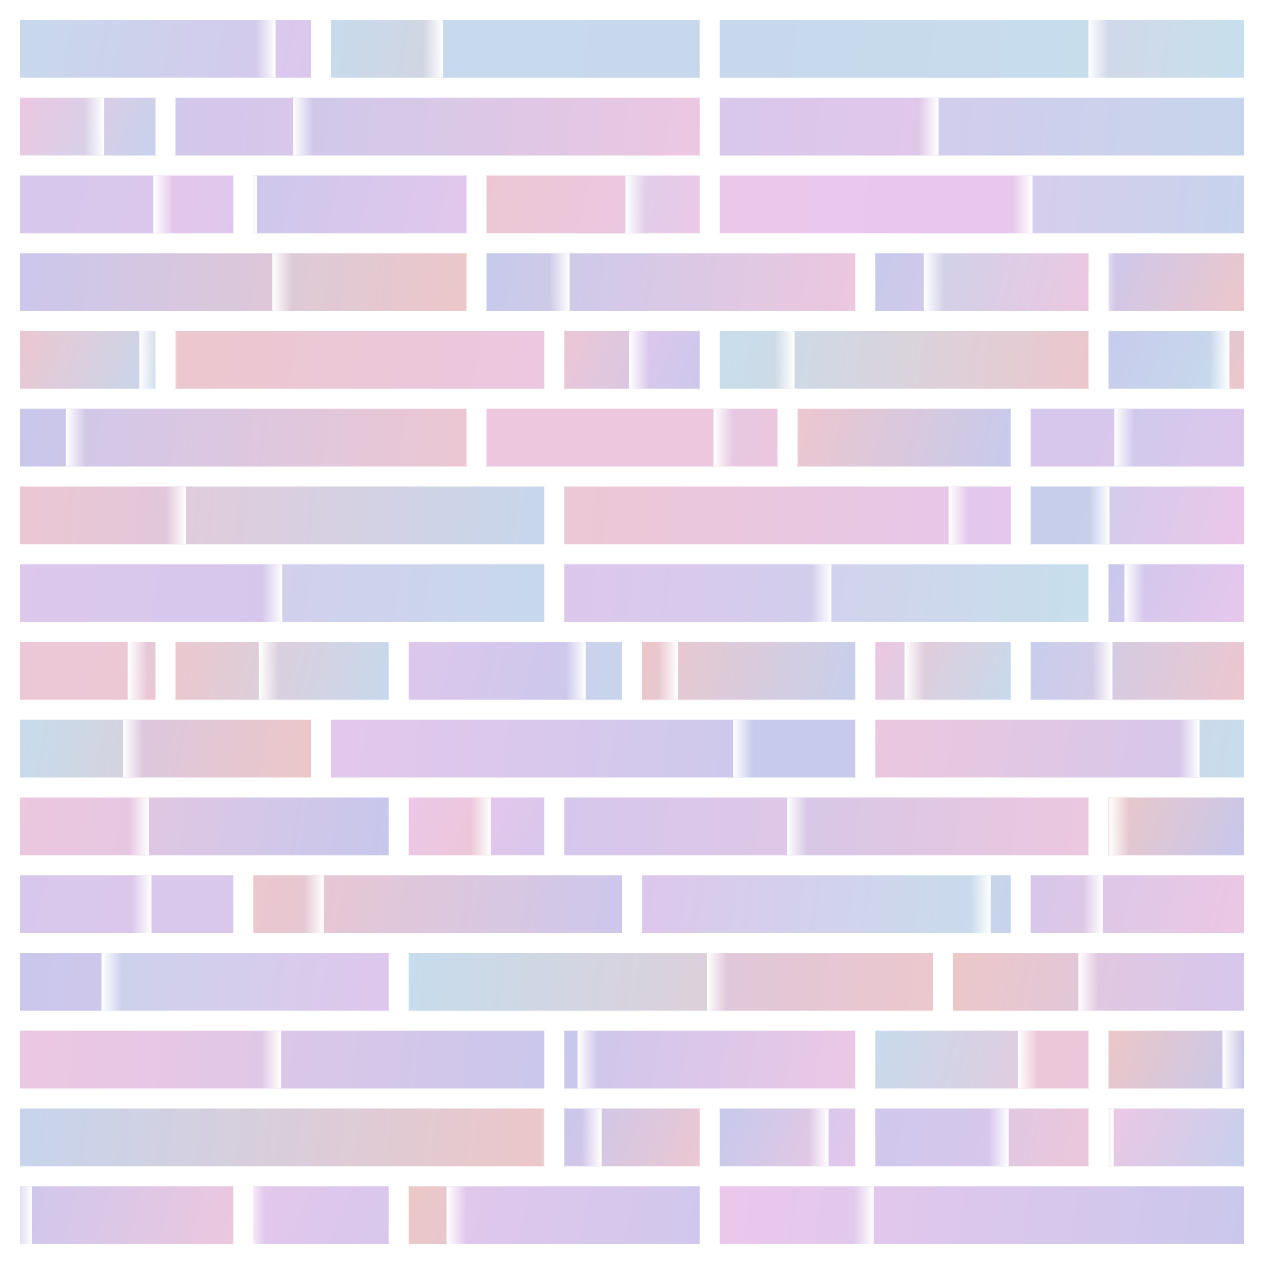 in search of: rectanugular search paths, in a grid, with gradients in pink, blue, and purple gradients